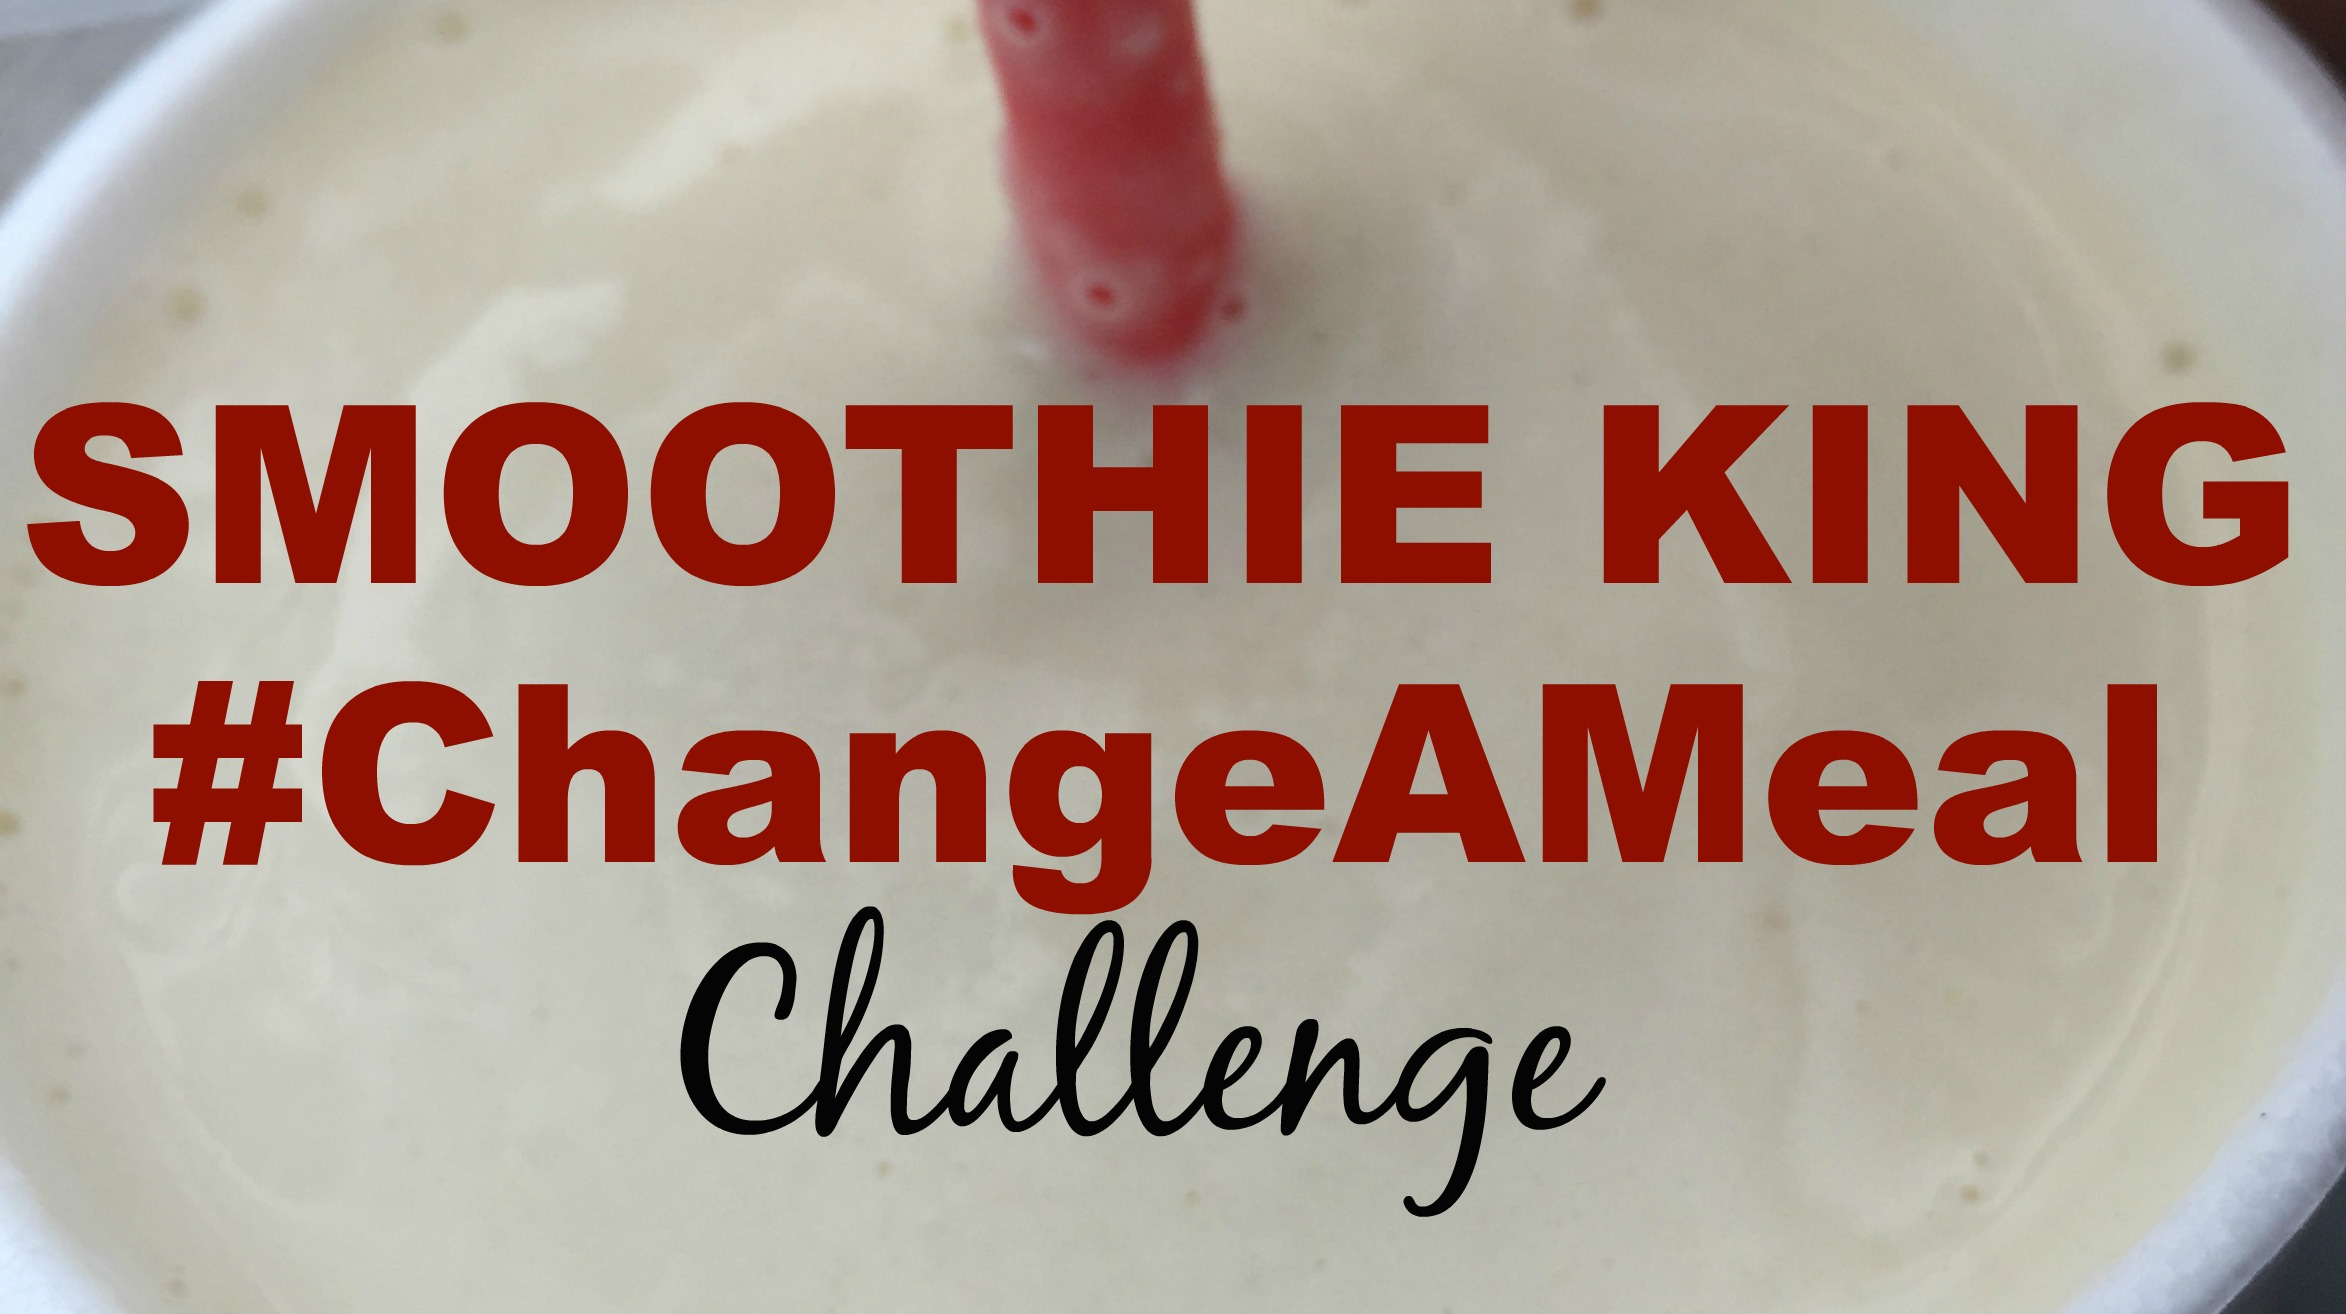 Smoothie King ChangeAMeal Challenge